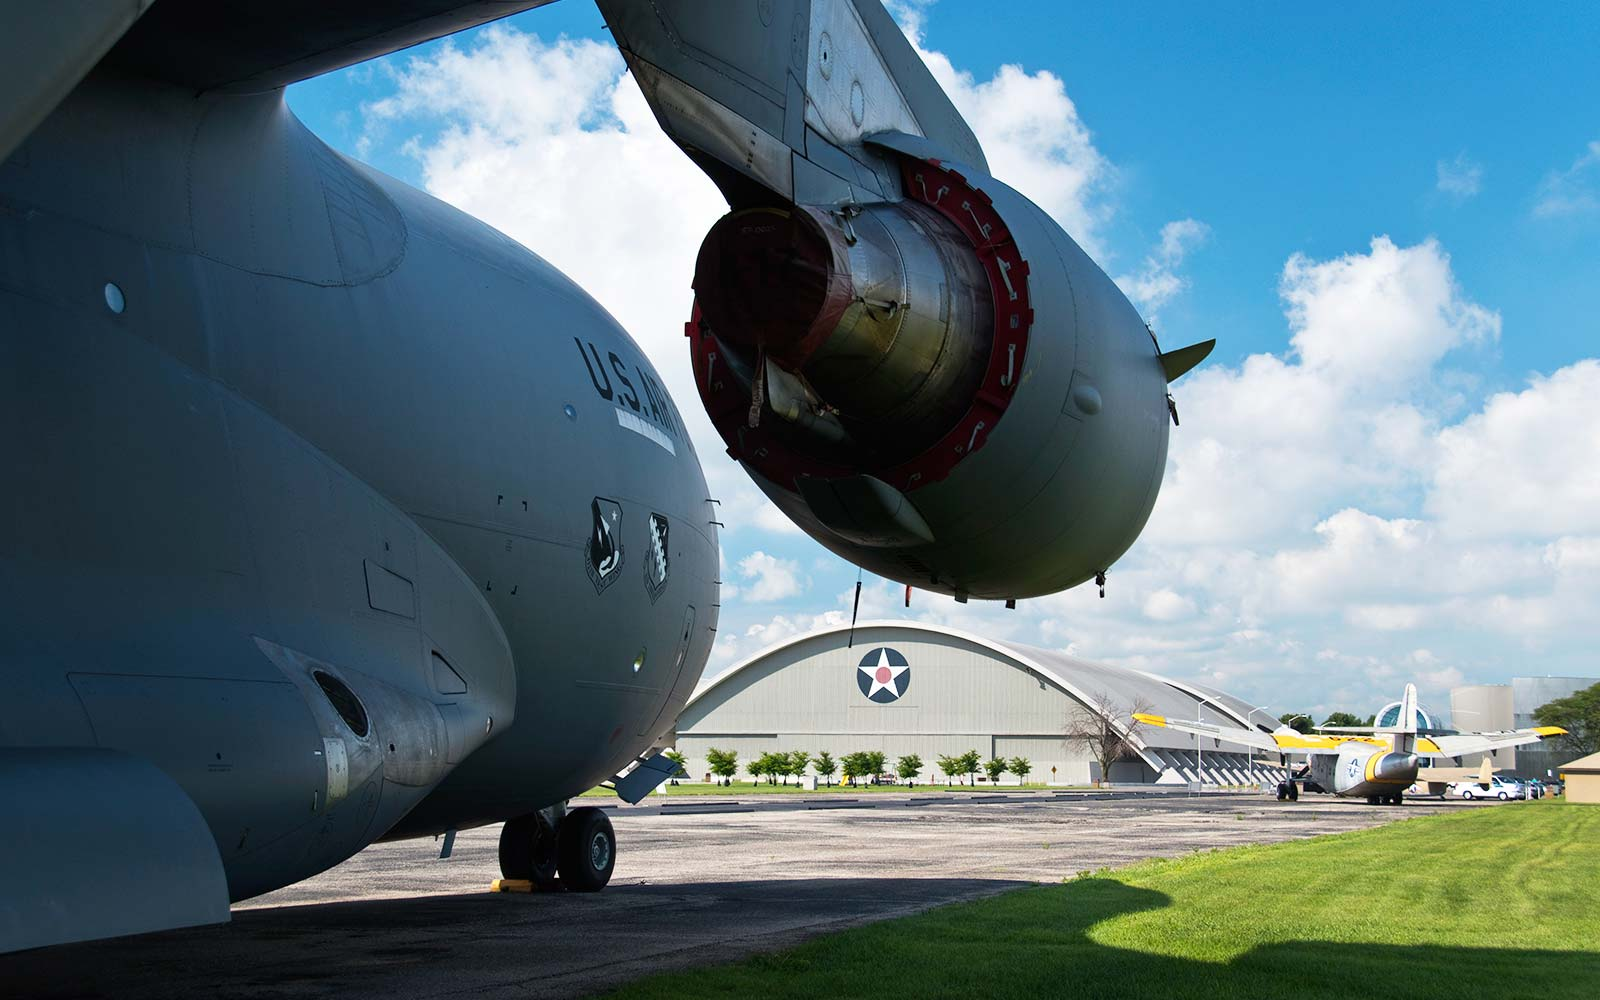 Where to see WWII planes